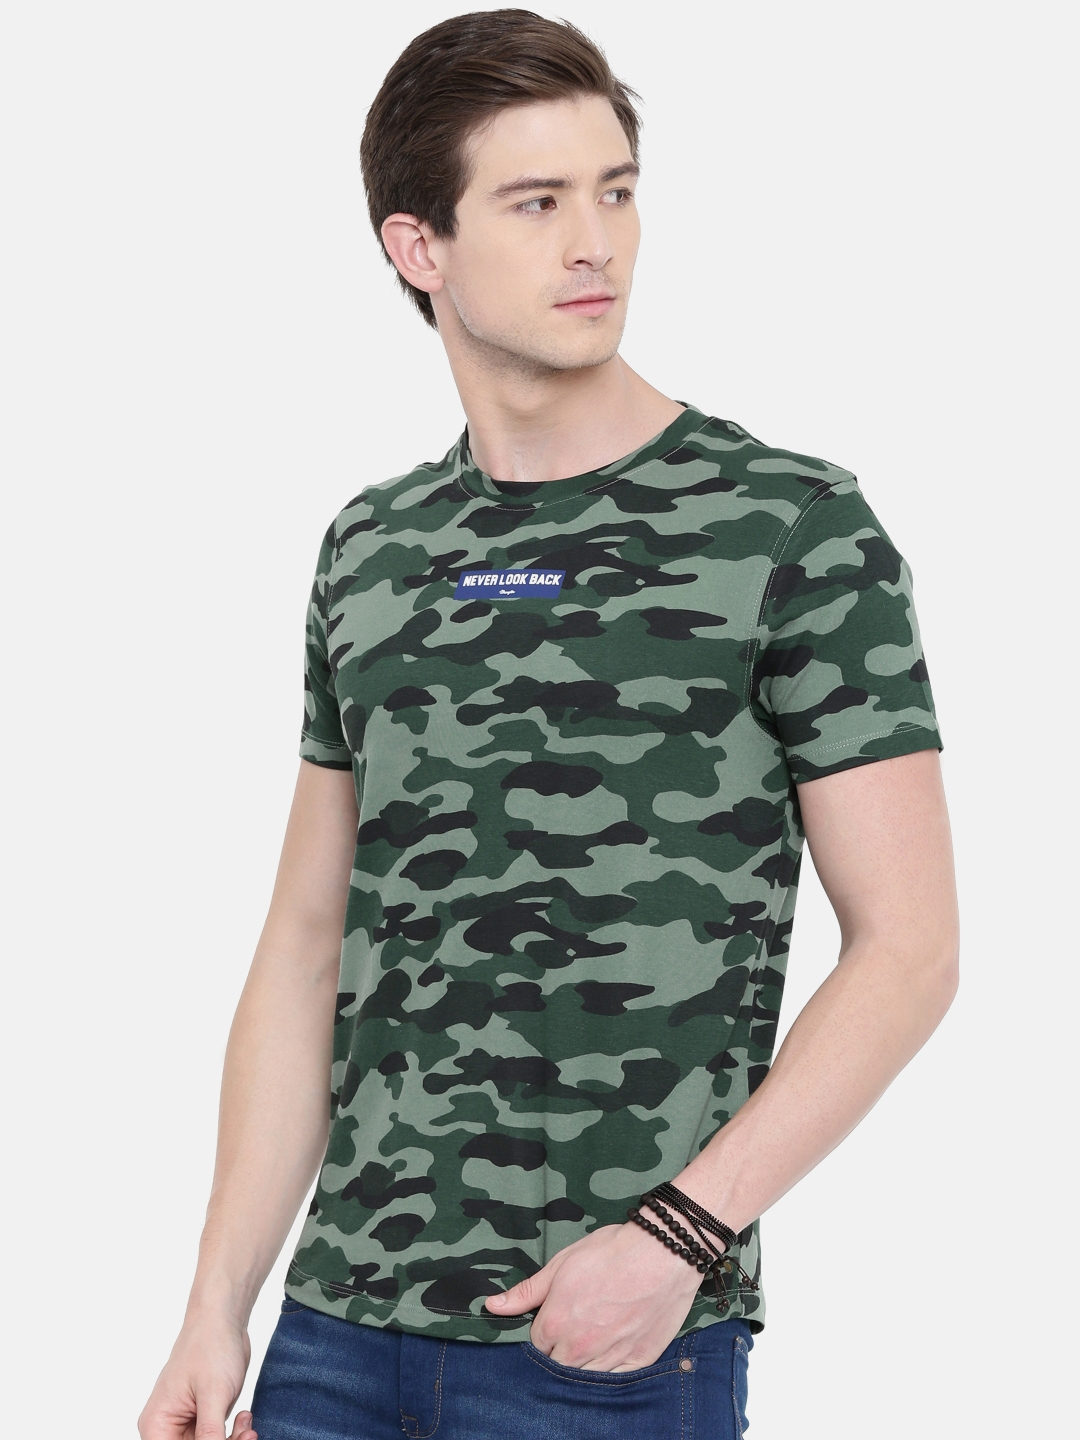 9bb5ecba3189 Buy Wrangler Men Olive Green Camouflage Printed T Shirt - Tshirts ...